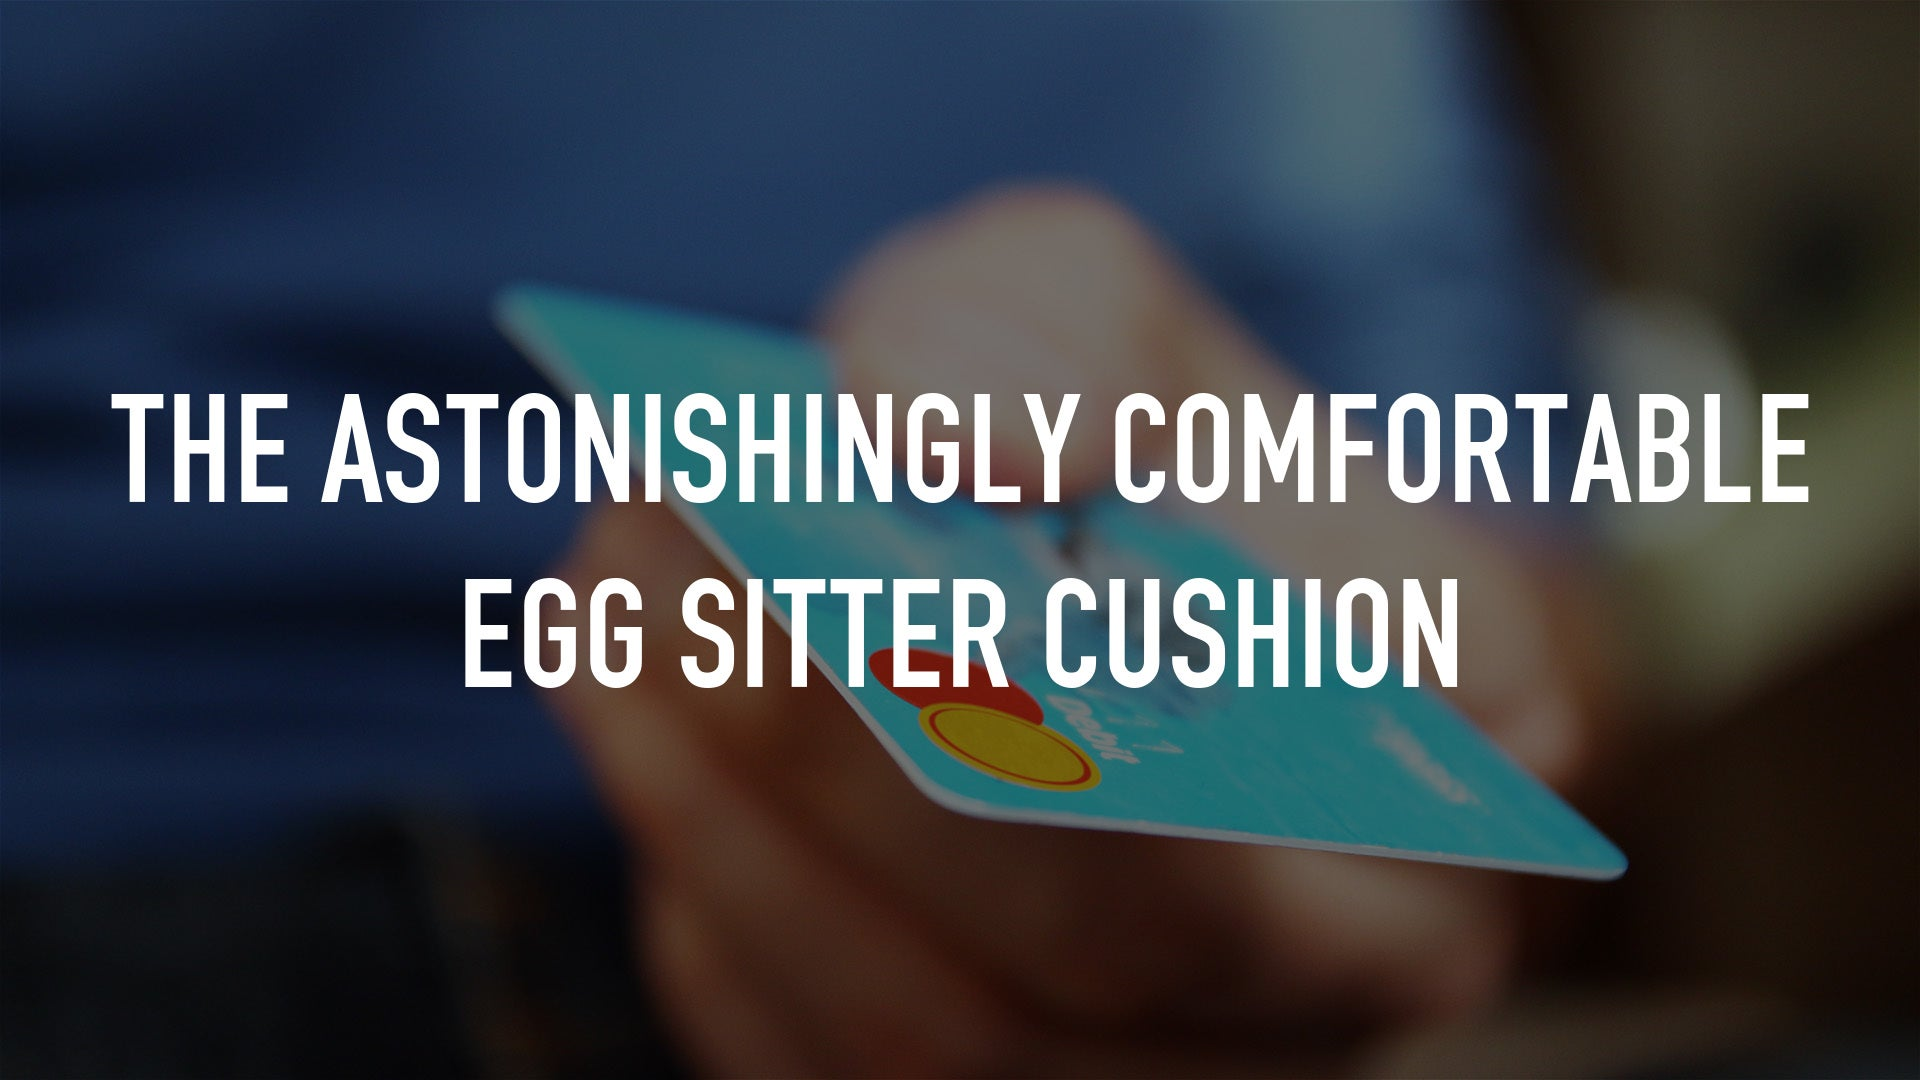 The Astonishingly Comfortable Egg Sitter Cushion